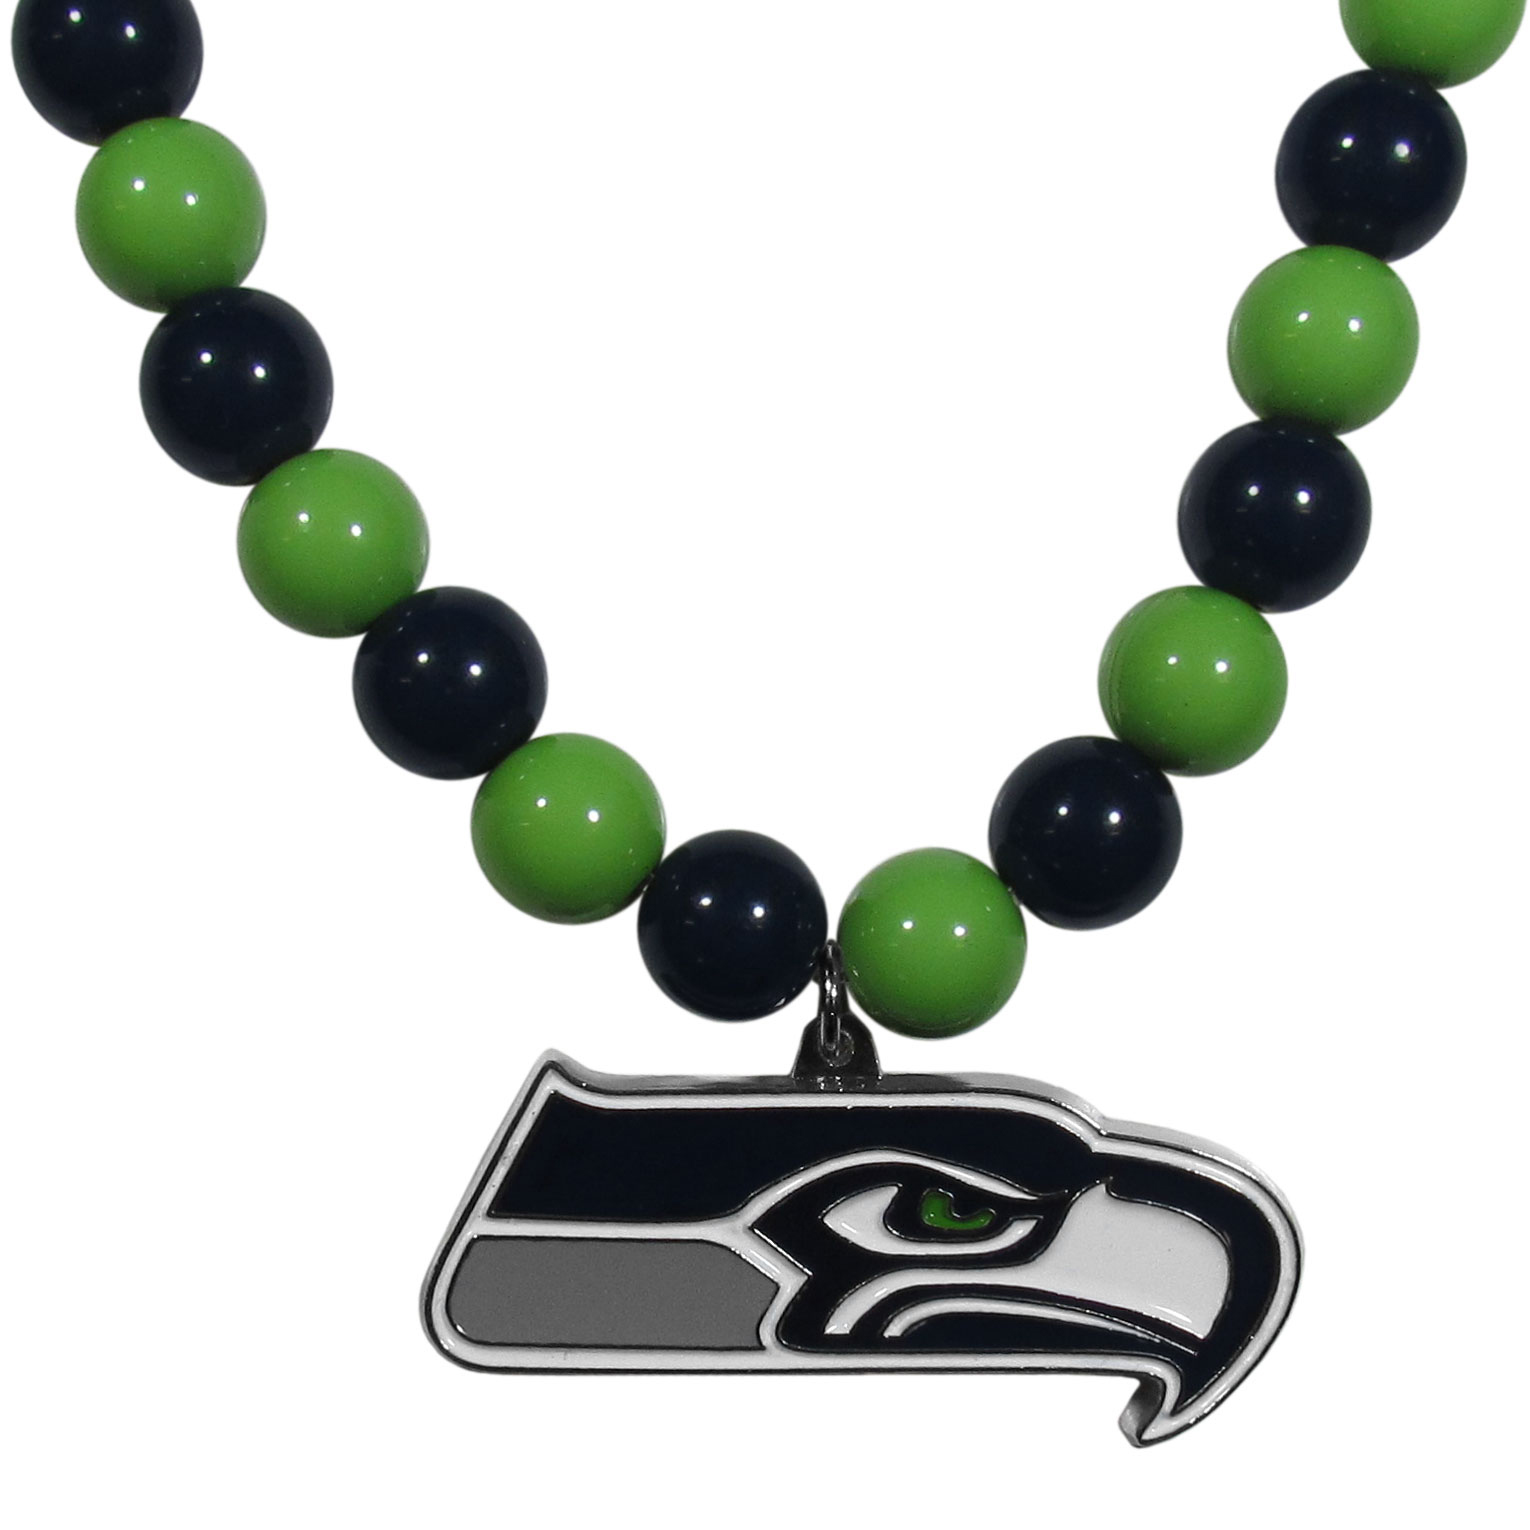 Seattle Seahawks Fan Bead Necklace - Make a big statement with our fan bead necklaces! These brightly colored necklace have a 24 inch string of alternating colored beads with an extra large, high-polish Seattle Seahawks pendant.